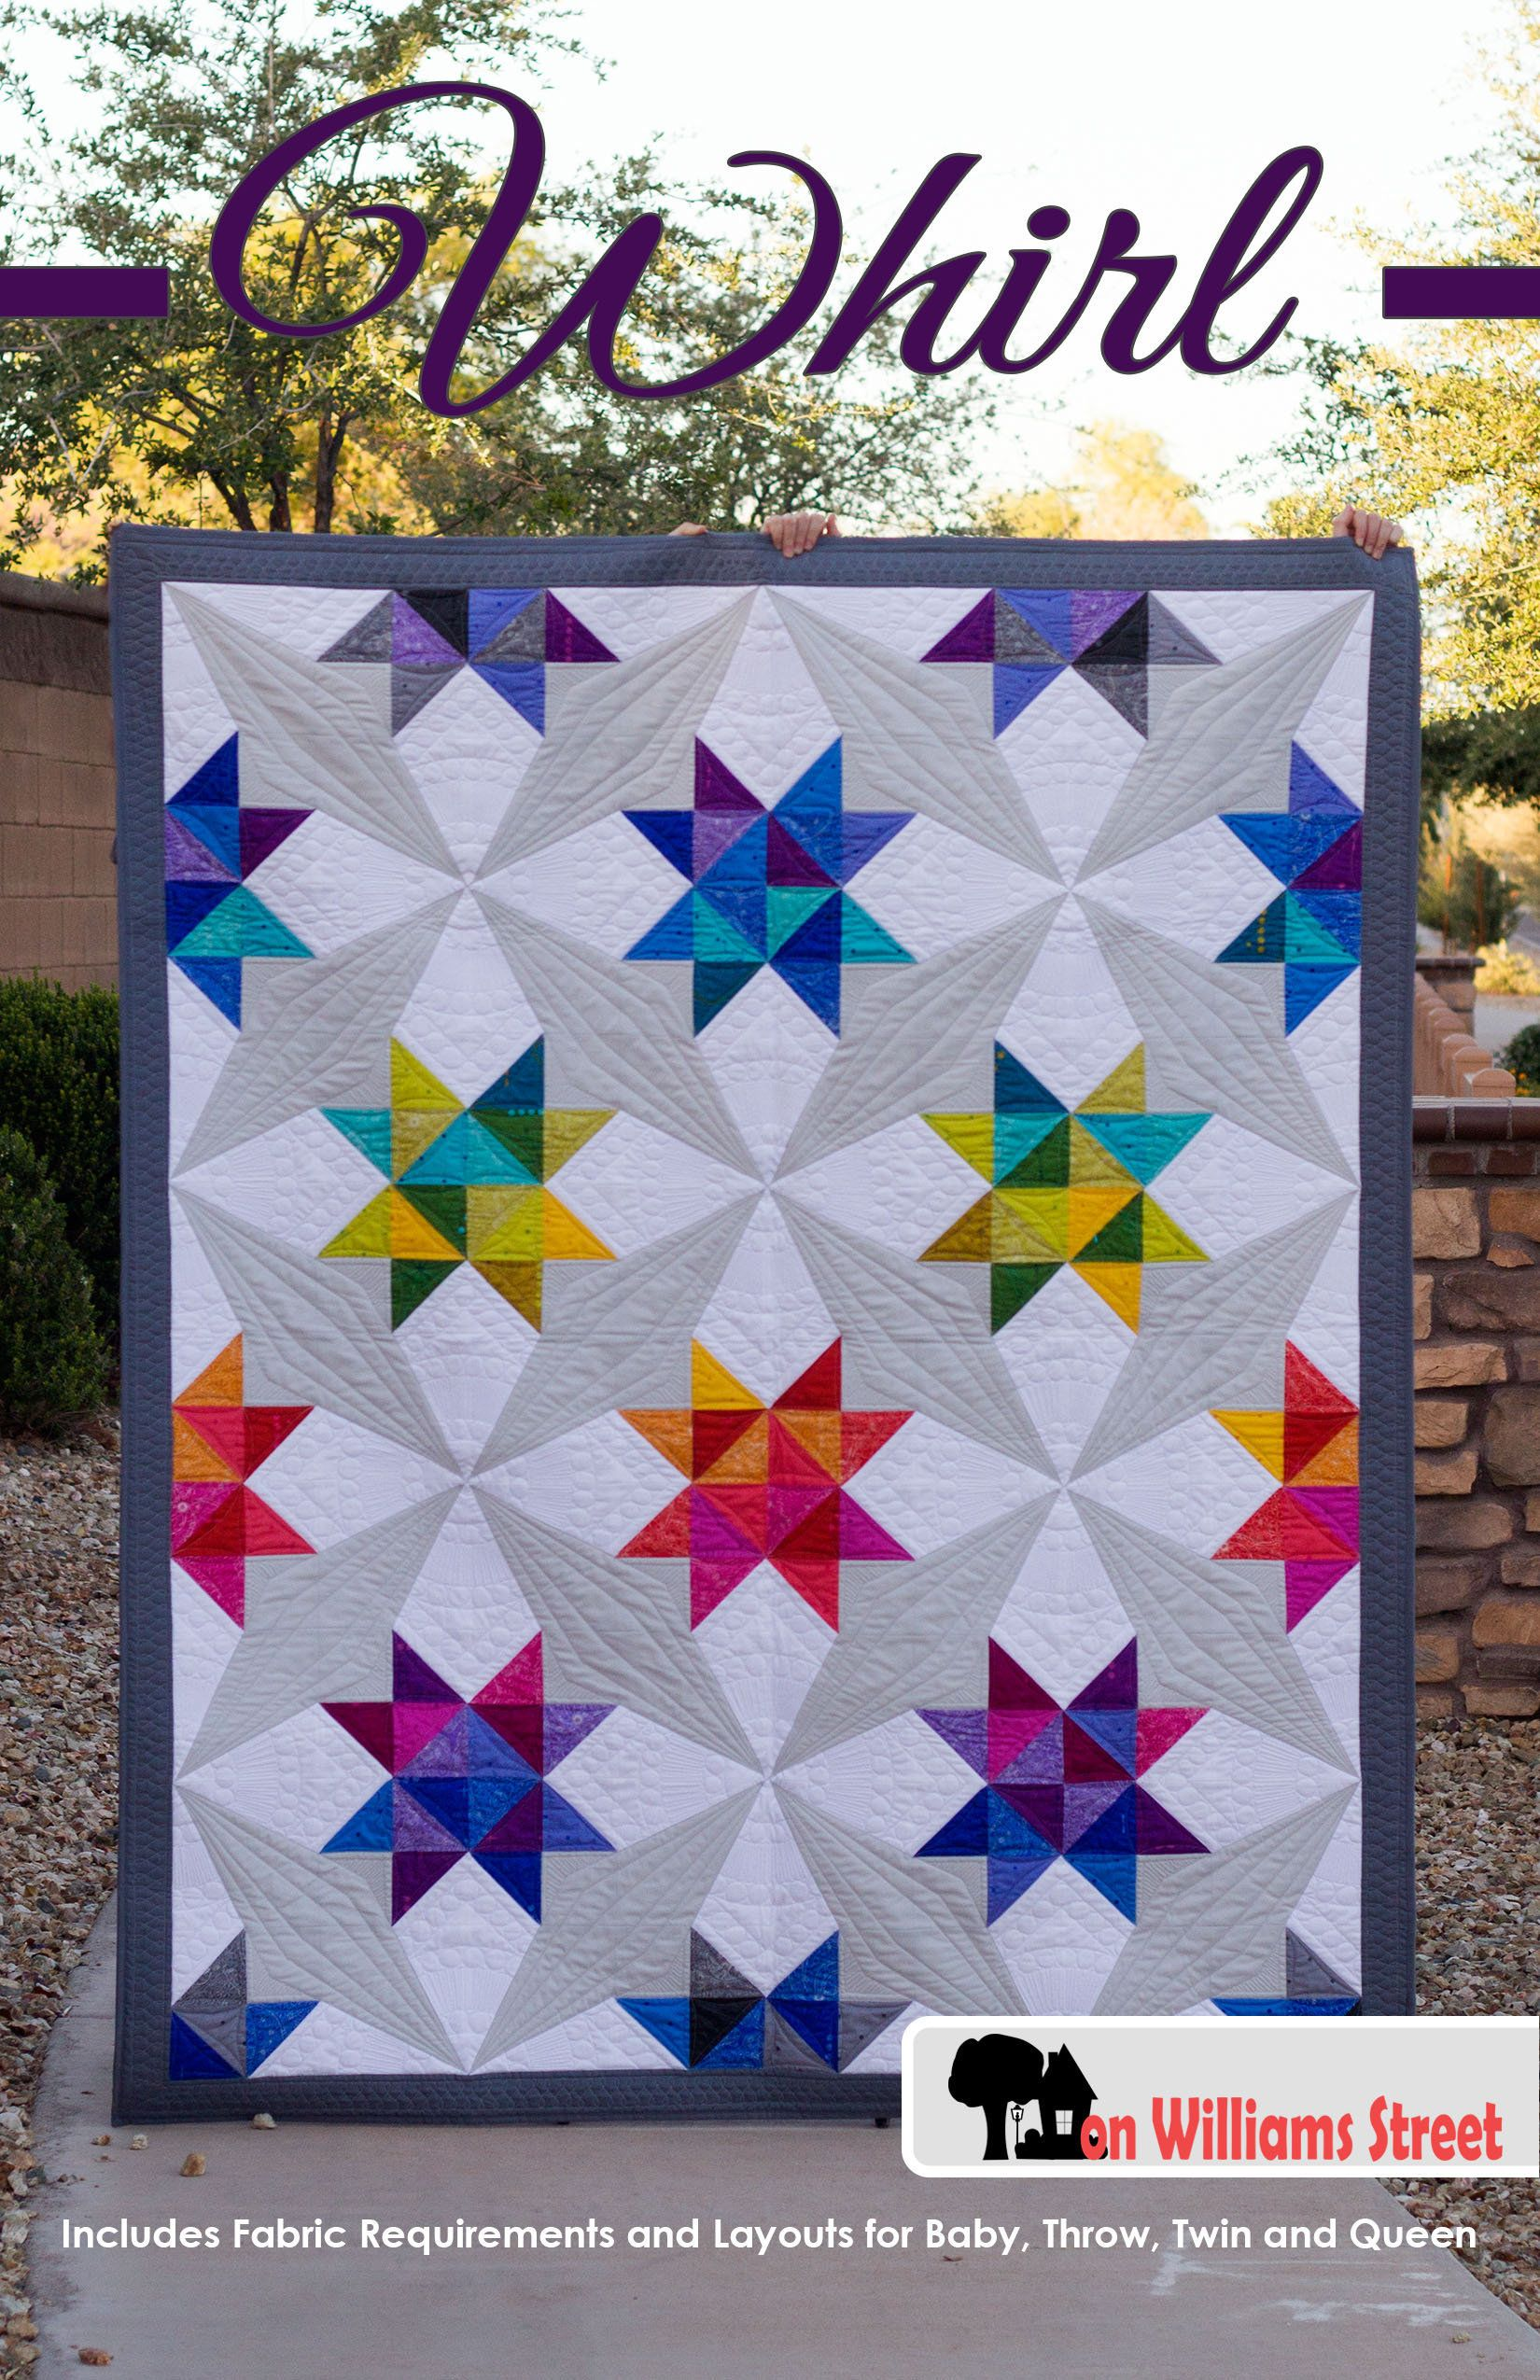 Whirl Modern Half Square Triangle And Paper Piece Pdf Quilt Pattern Beginner Quilt Patterns Paper Piecing Quilts Modern Quilting Designs